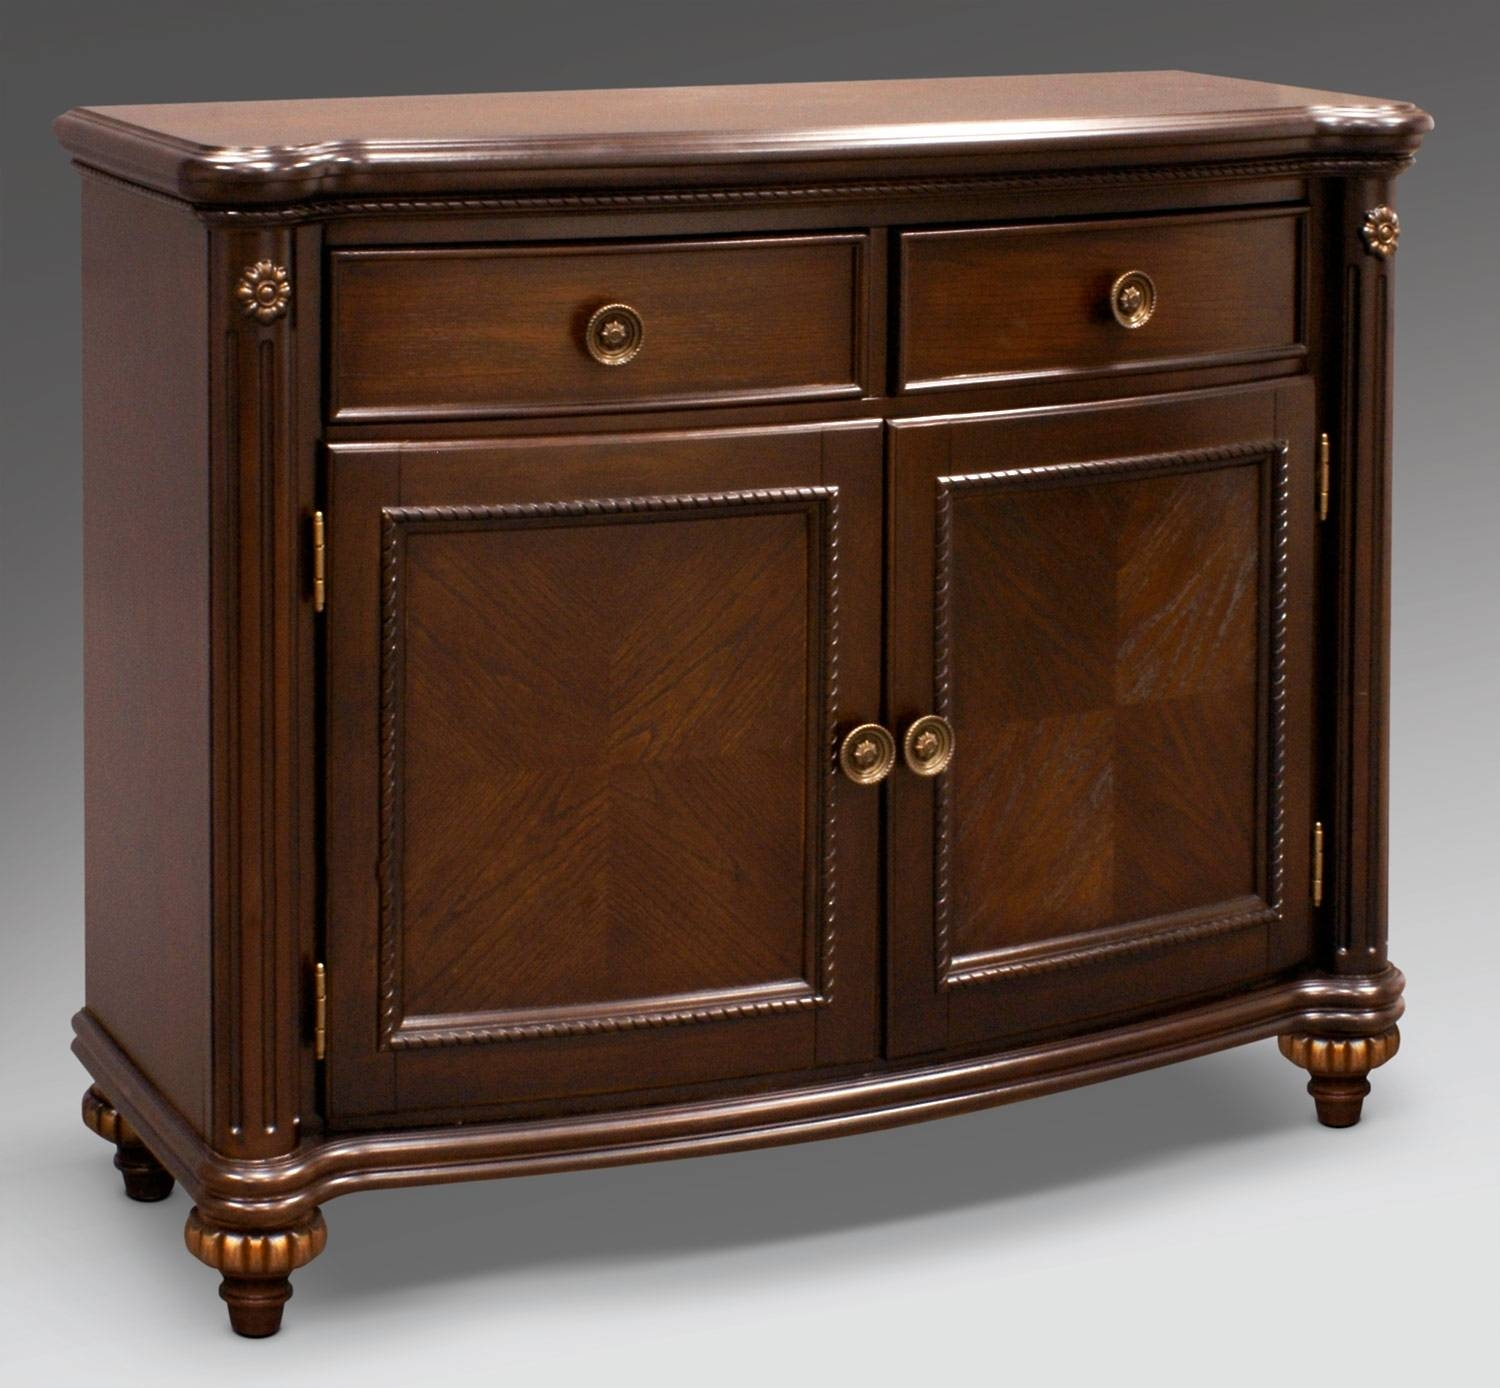 Dining Room Servers Buffet Furniture Pictures Cabinet Trends And pertaining to Dining Buffets and Sideboards (Image 10 of 15)